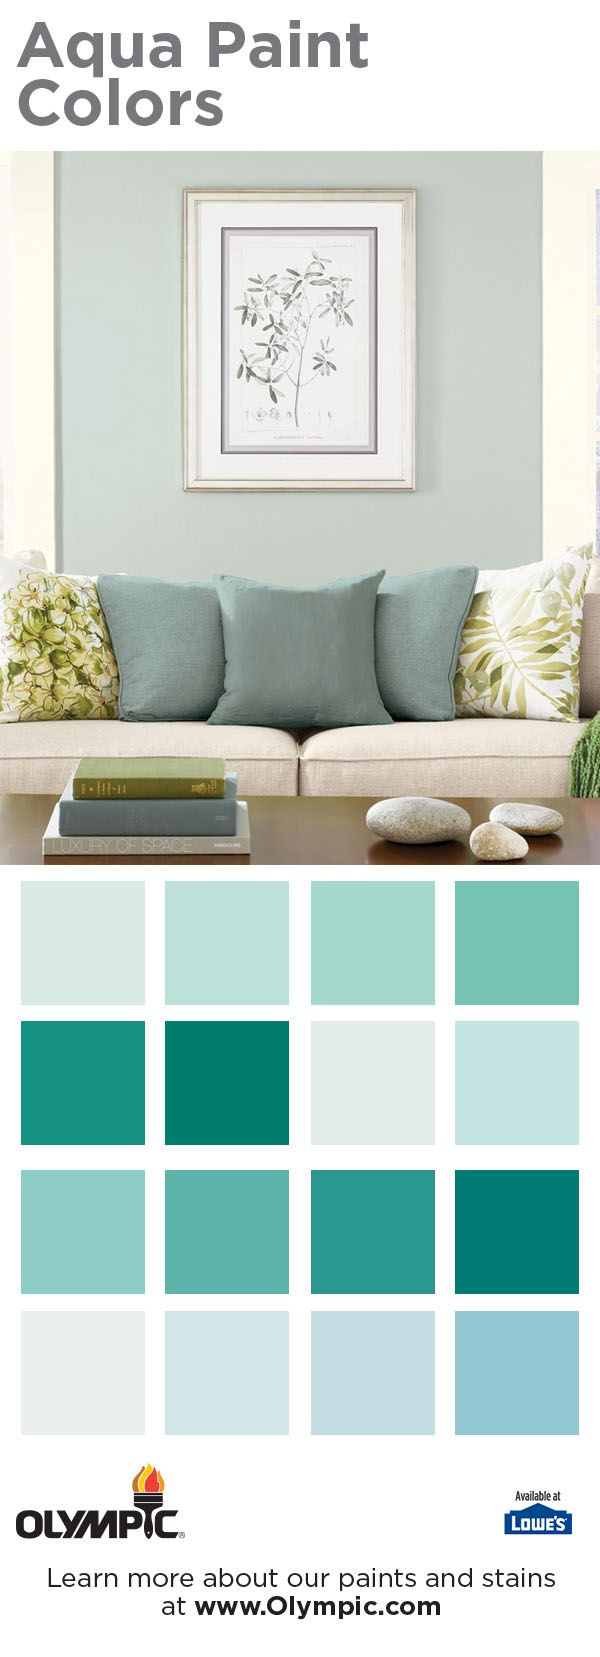 Aqua paint colors by Olympic Paint create a space that's perfect for creativity and relaxation. Aquas make for terrific base colors if you want extra color in your life. They help with concentration, mental organization and clarity. You can also use them as accents to feel the subtle effects of rejuvenation, increased creativity and empathy. You can't go wrong with these sensitive colors.